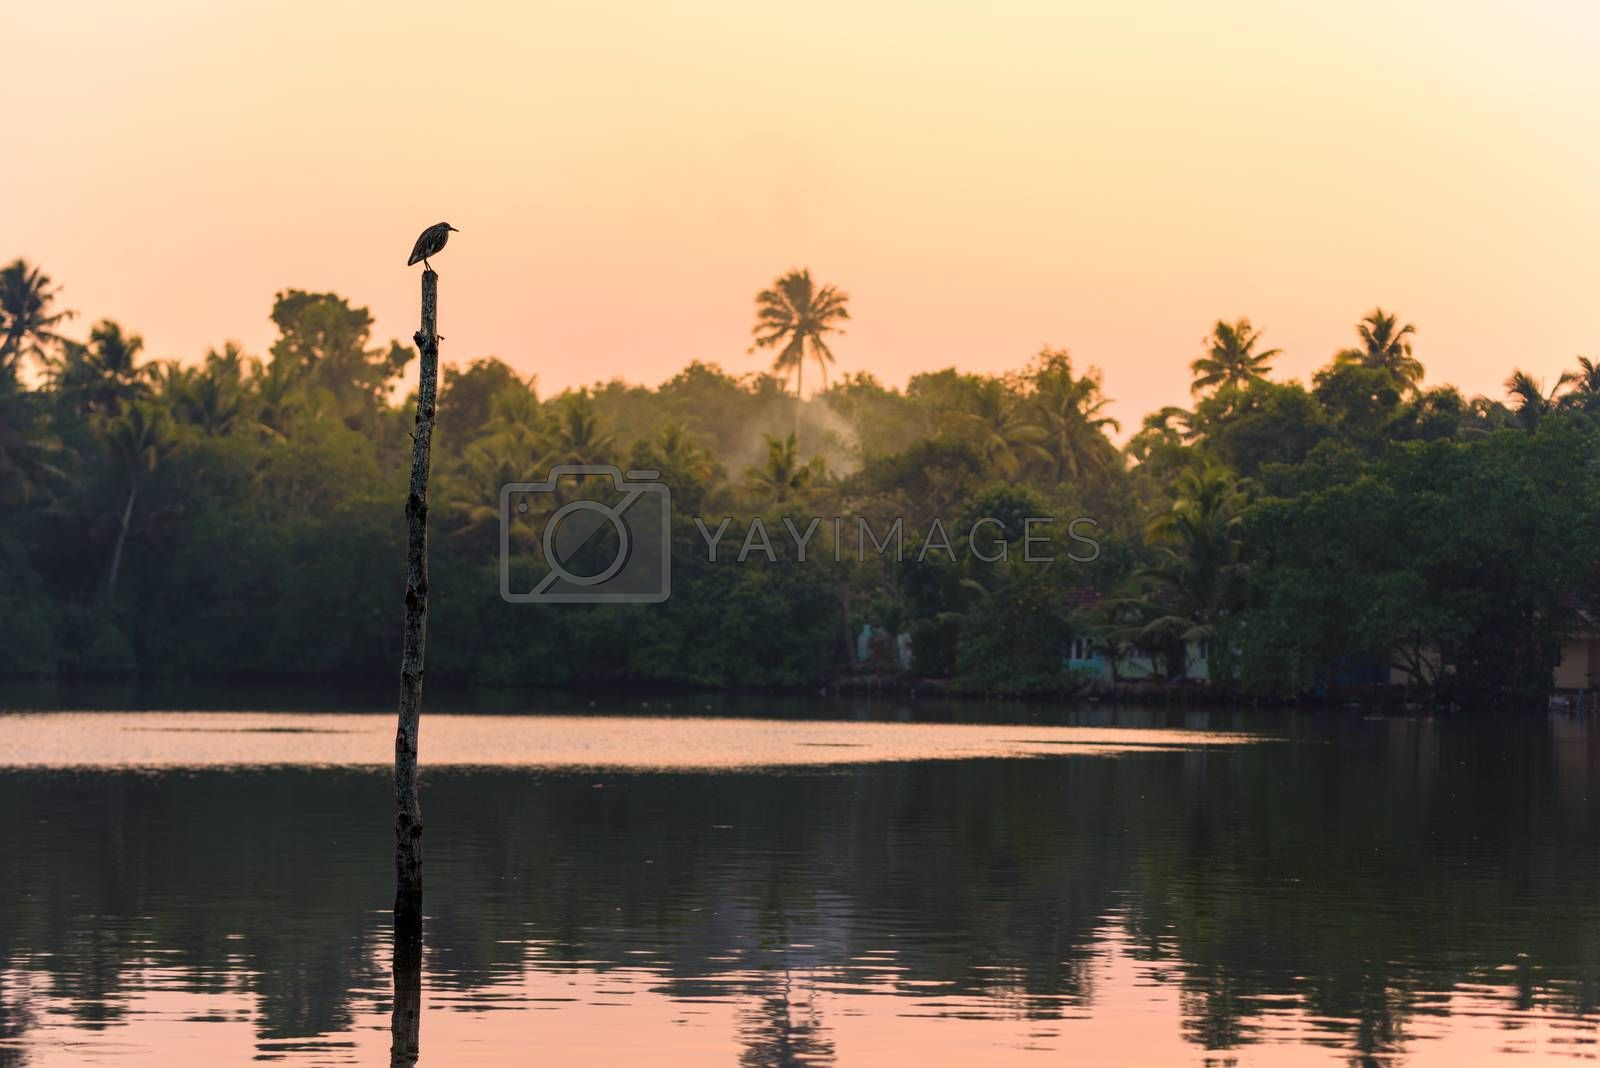 A fishing bird stands on a stilt in a lake, in a tropical jungle popular for yoga retreat and birdwatching, in Backwaters, Eramalloor, Kerala, India